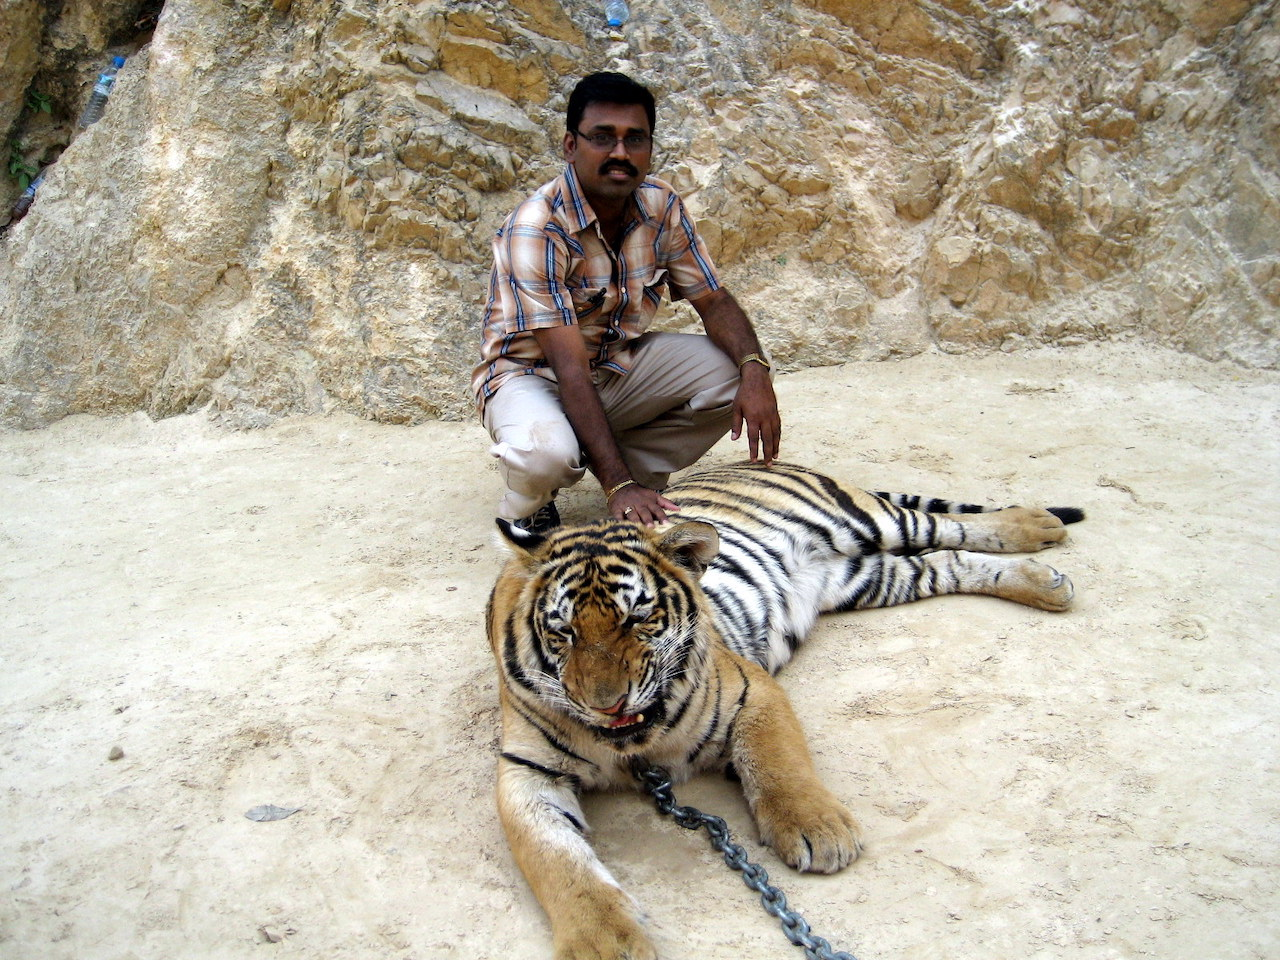 Posing with the Tiger in Tiger Temple of Thailand